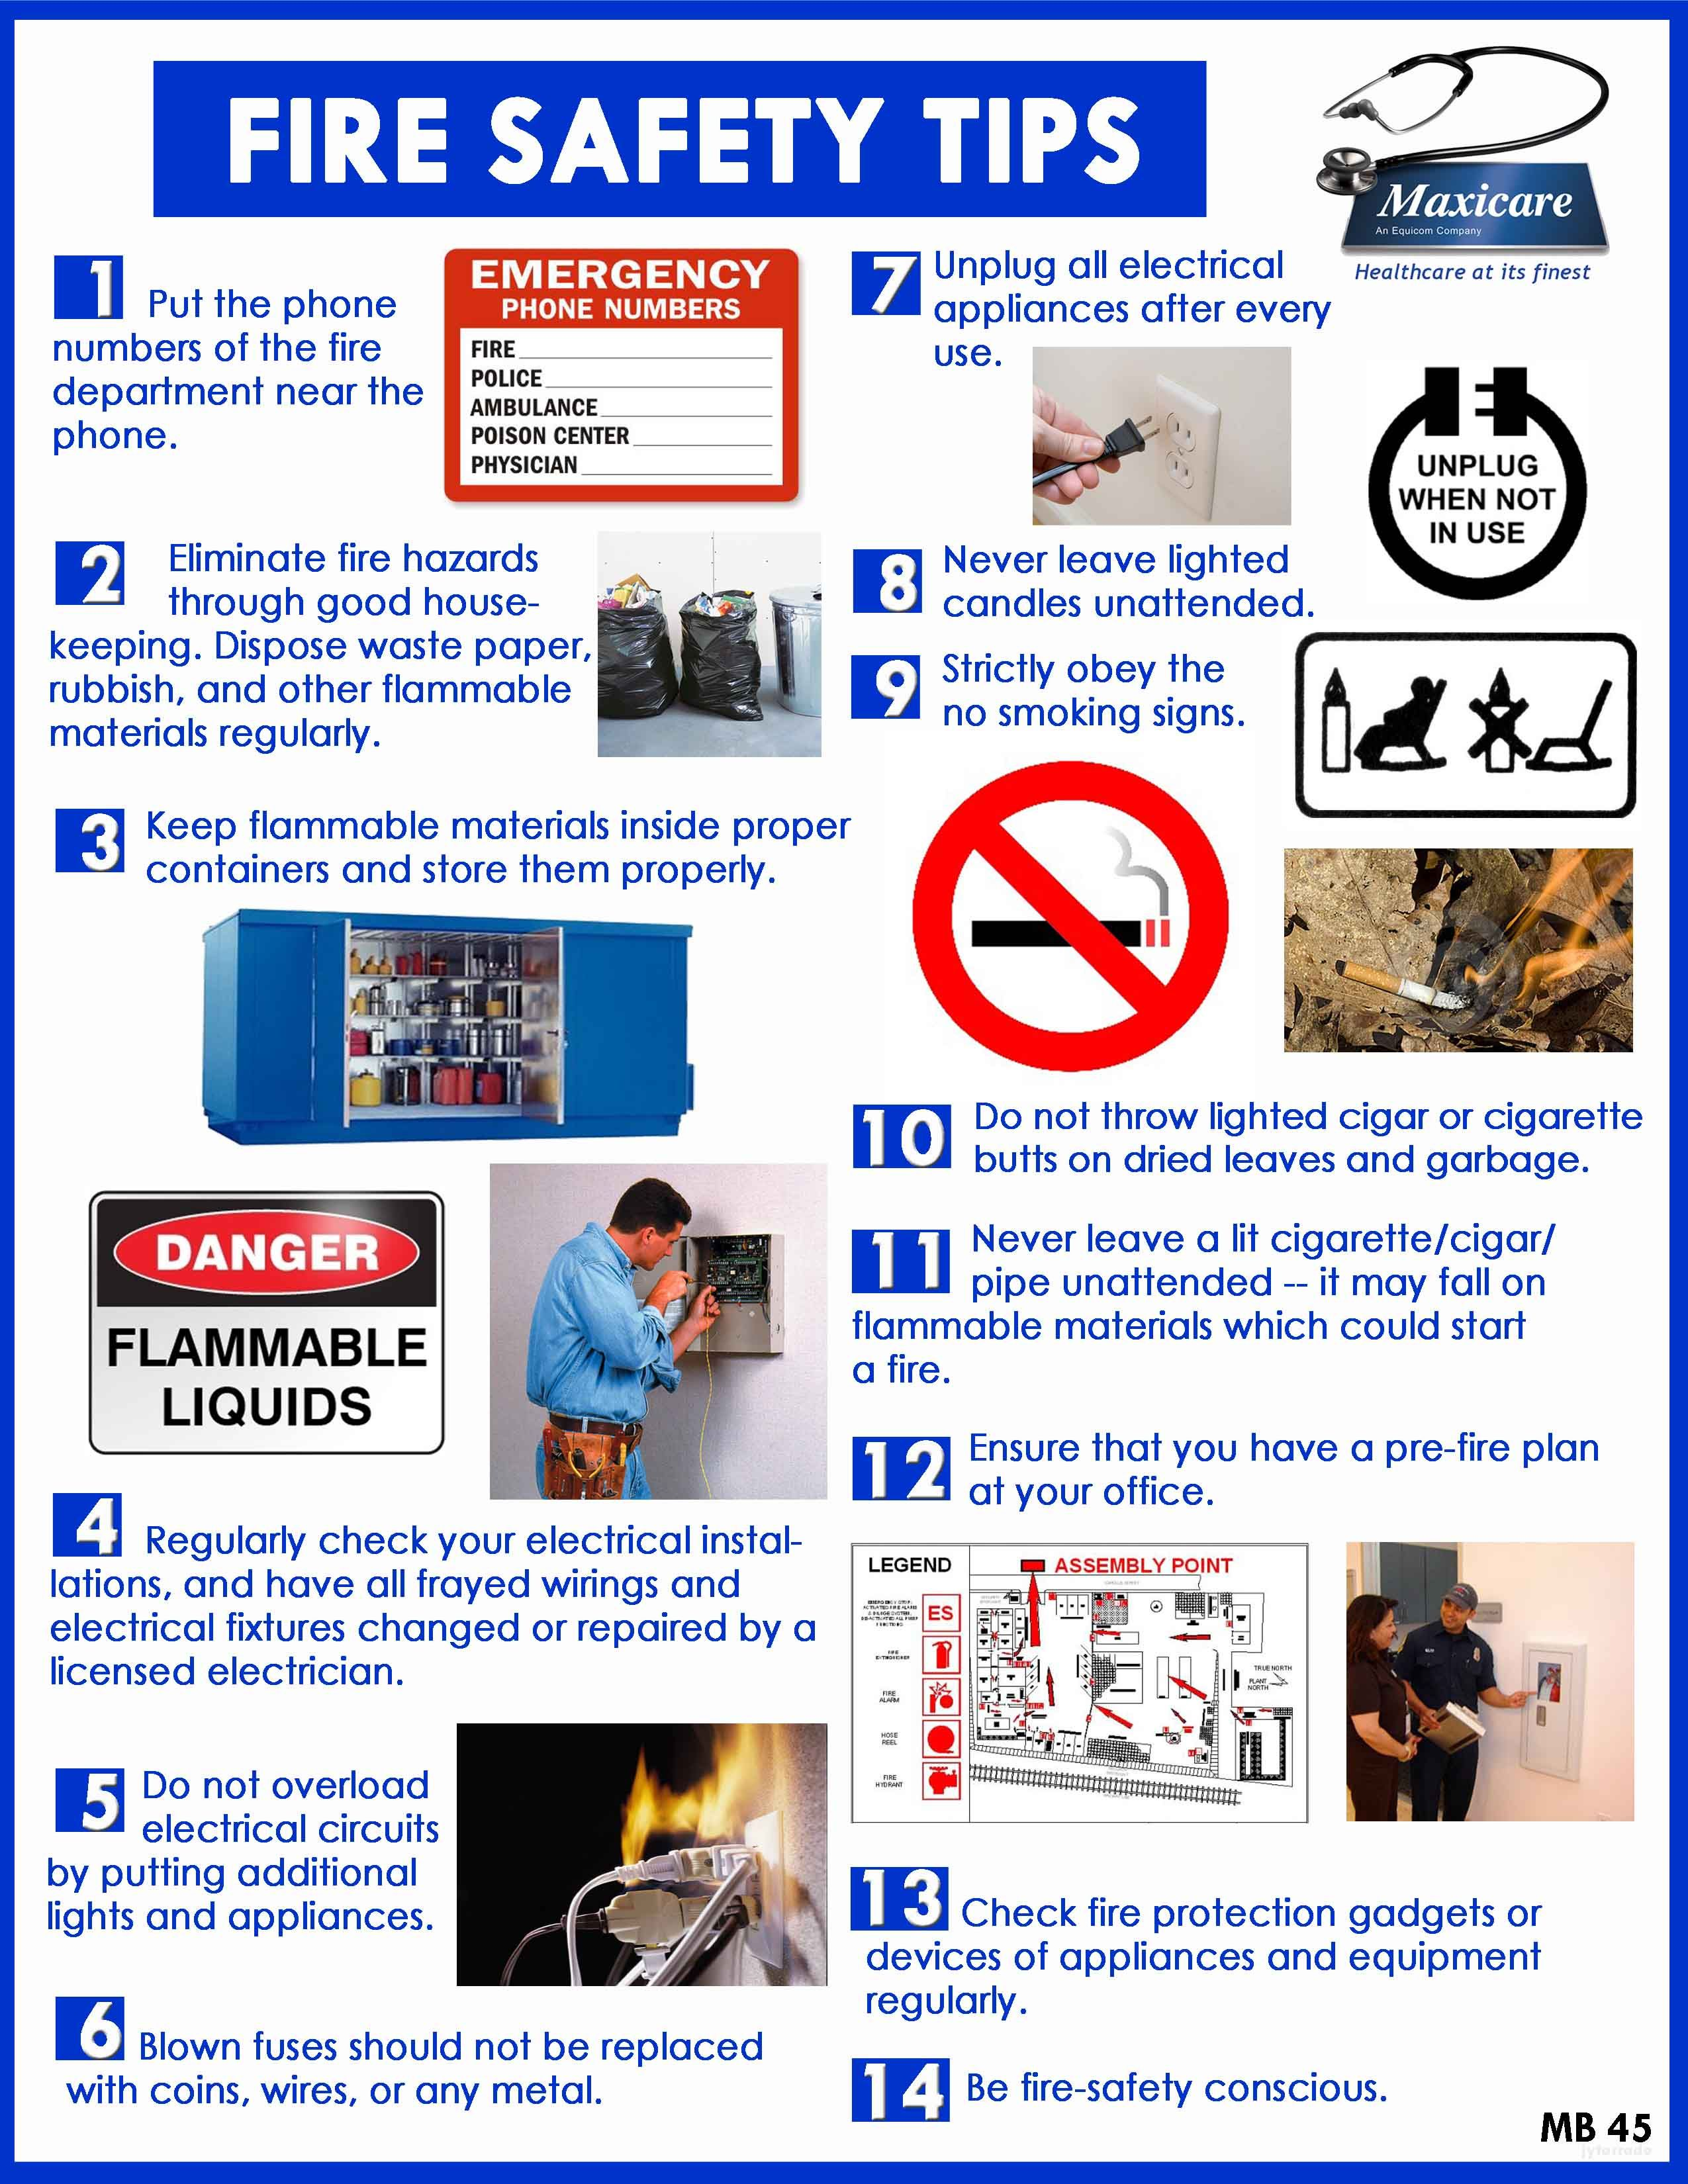 86 Hours Of Research Led To This Infographic On Fire Safety For Kids